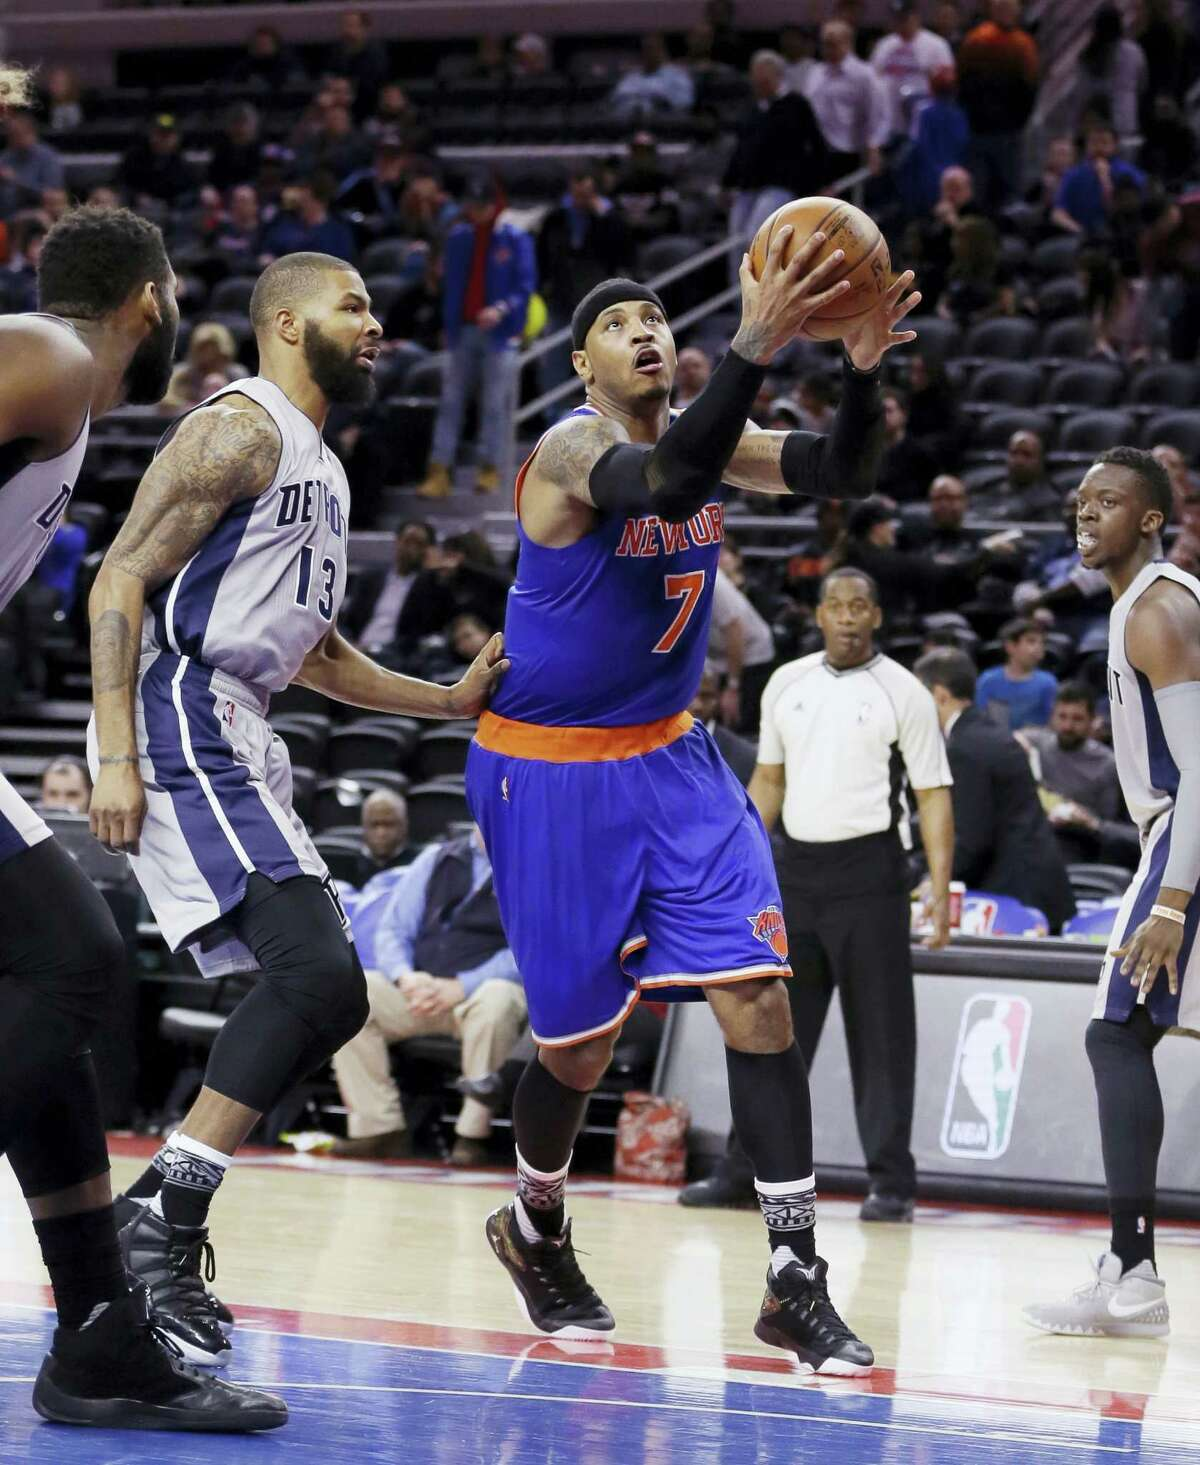 New York Knicks forward Carmelo Anthony (7) makes a layup while defended by Detroit Pistons forward Marcus Morris during the second half Thursday in Auburn Hills, Mich.